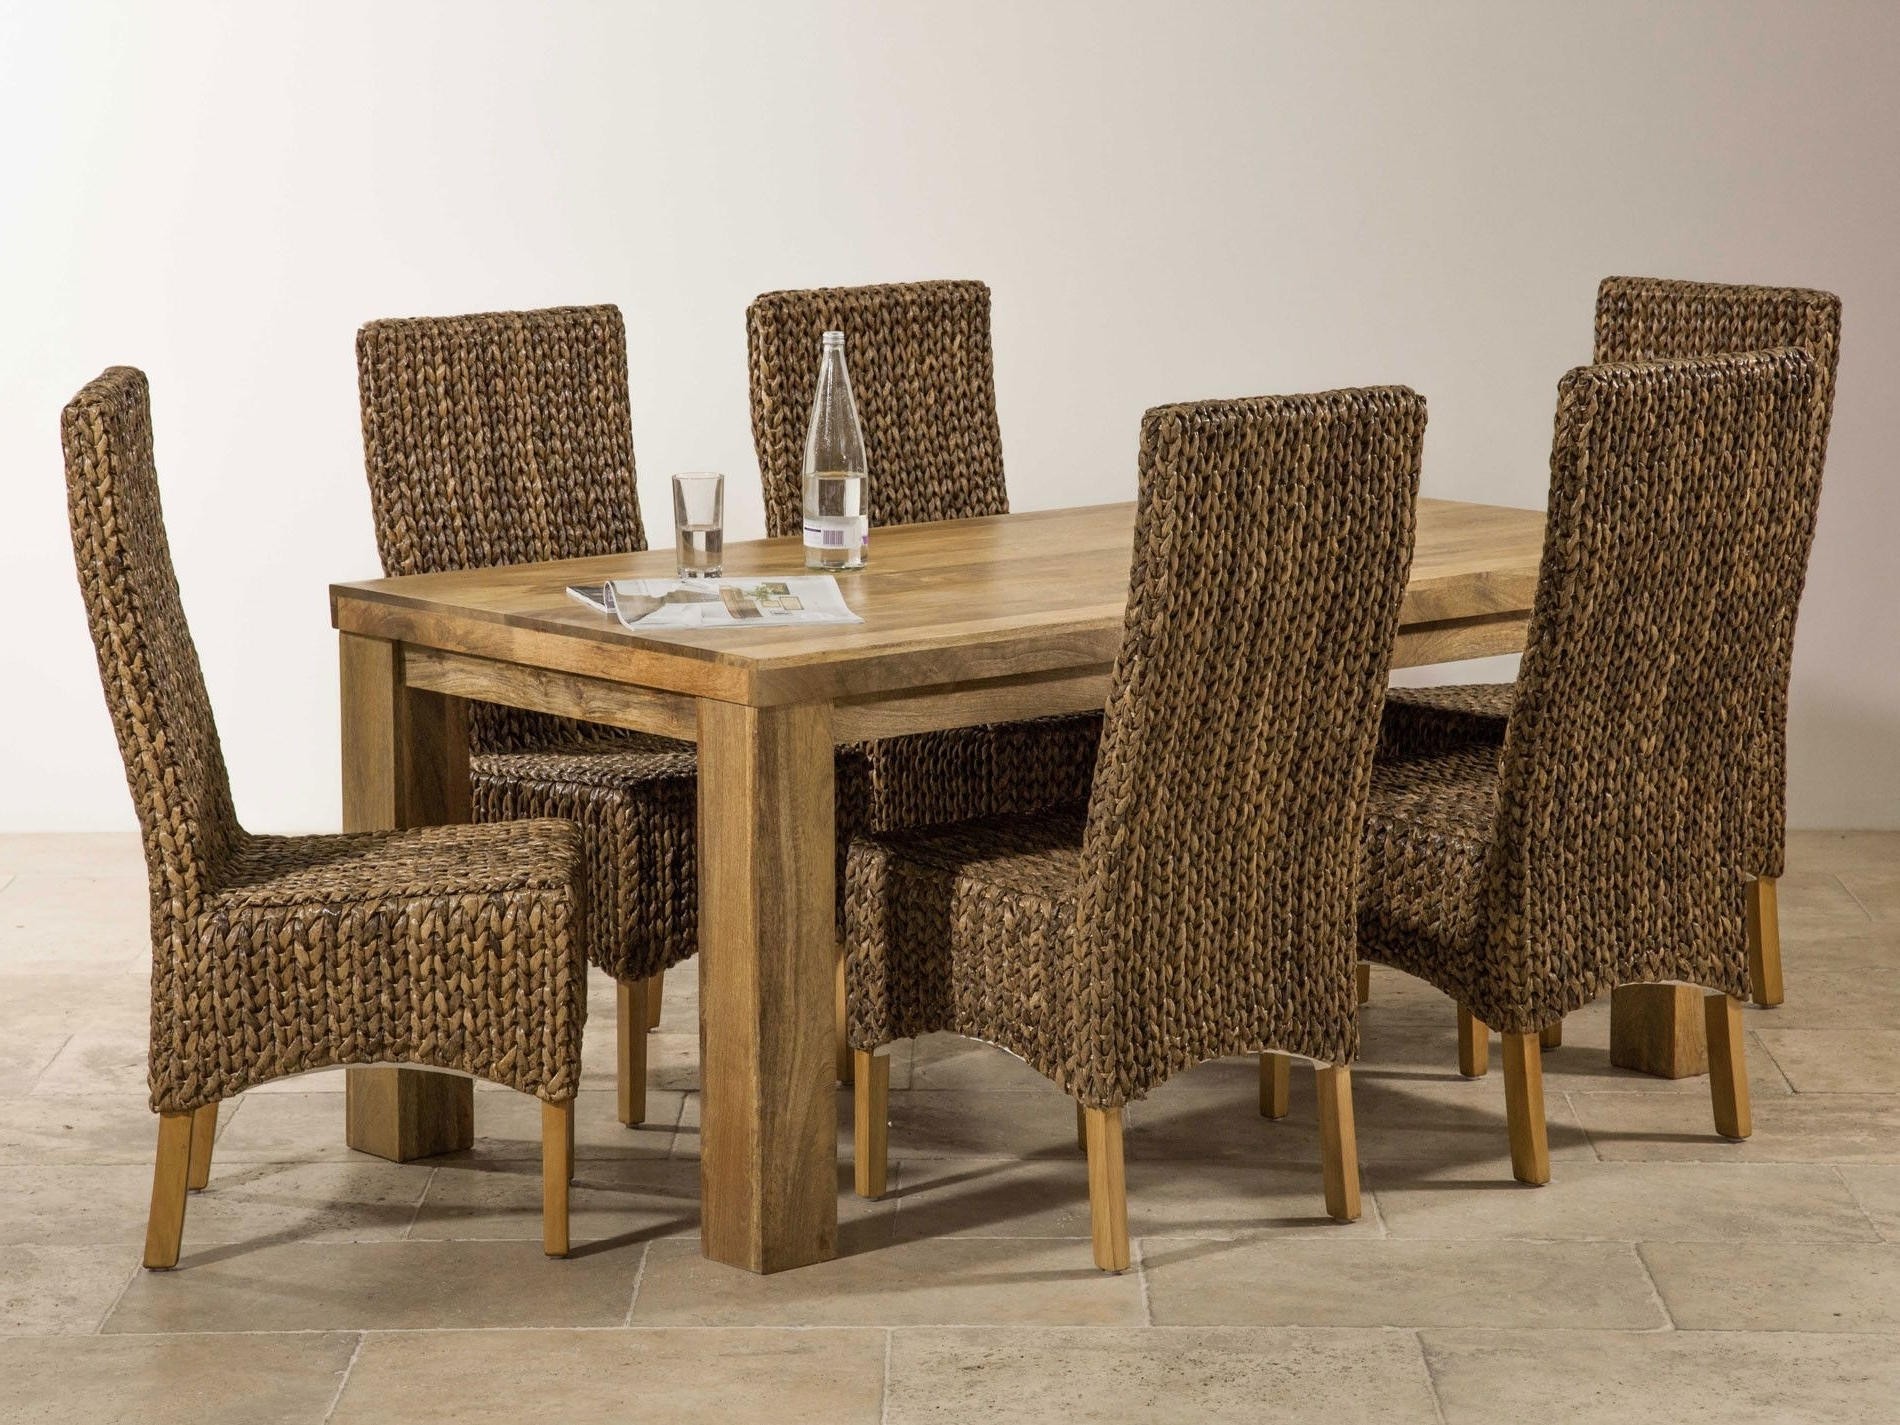 Mantis Light Solid Mango 6Ft X 3Ft Dining Table + 6 Highback Grass With Regard To Most Popular 3Ft Dining Tables (View 15 of 25)